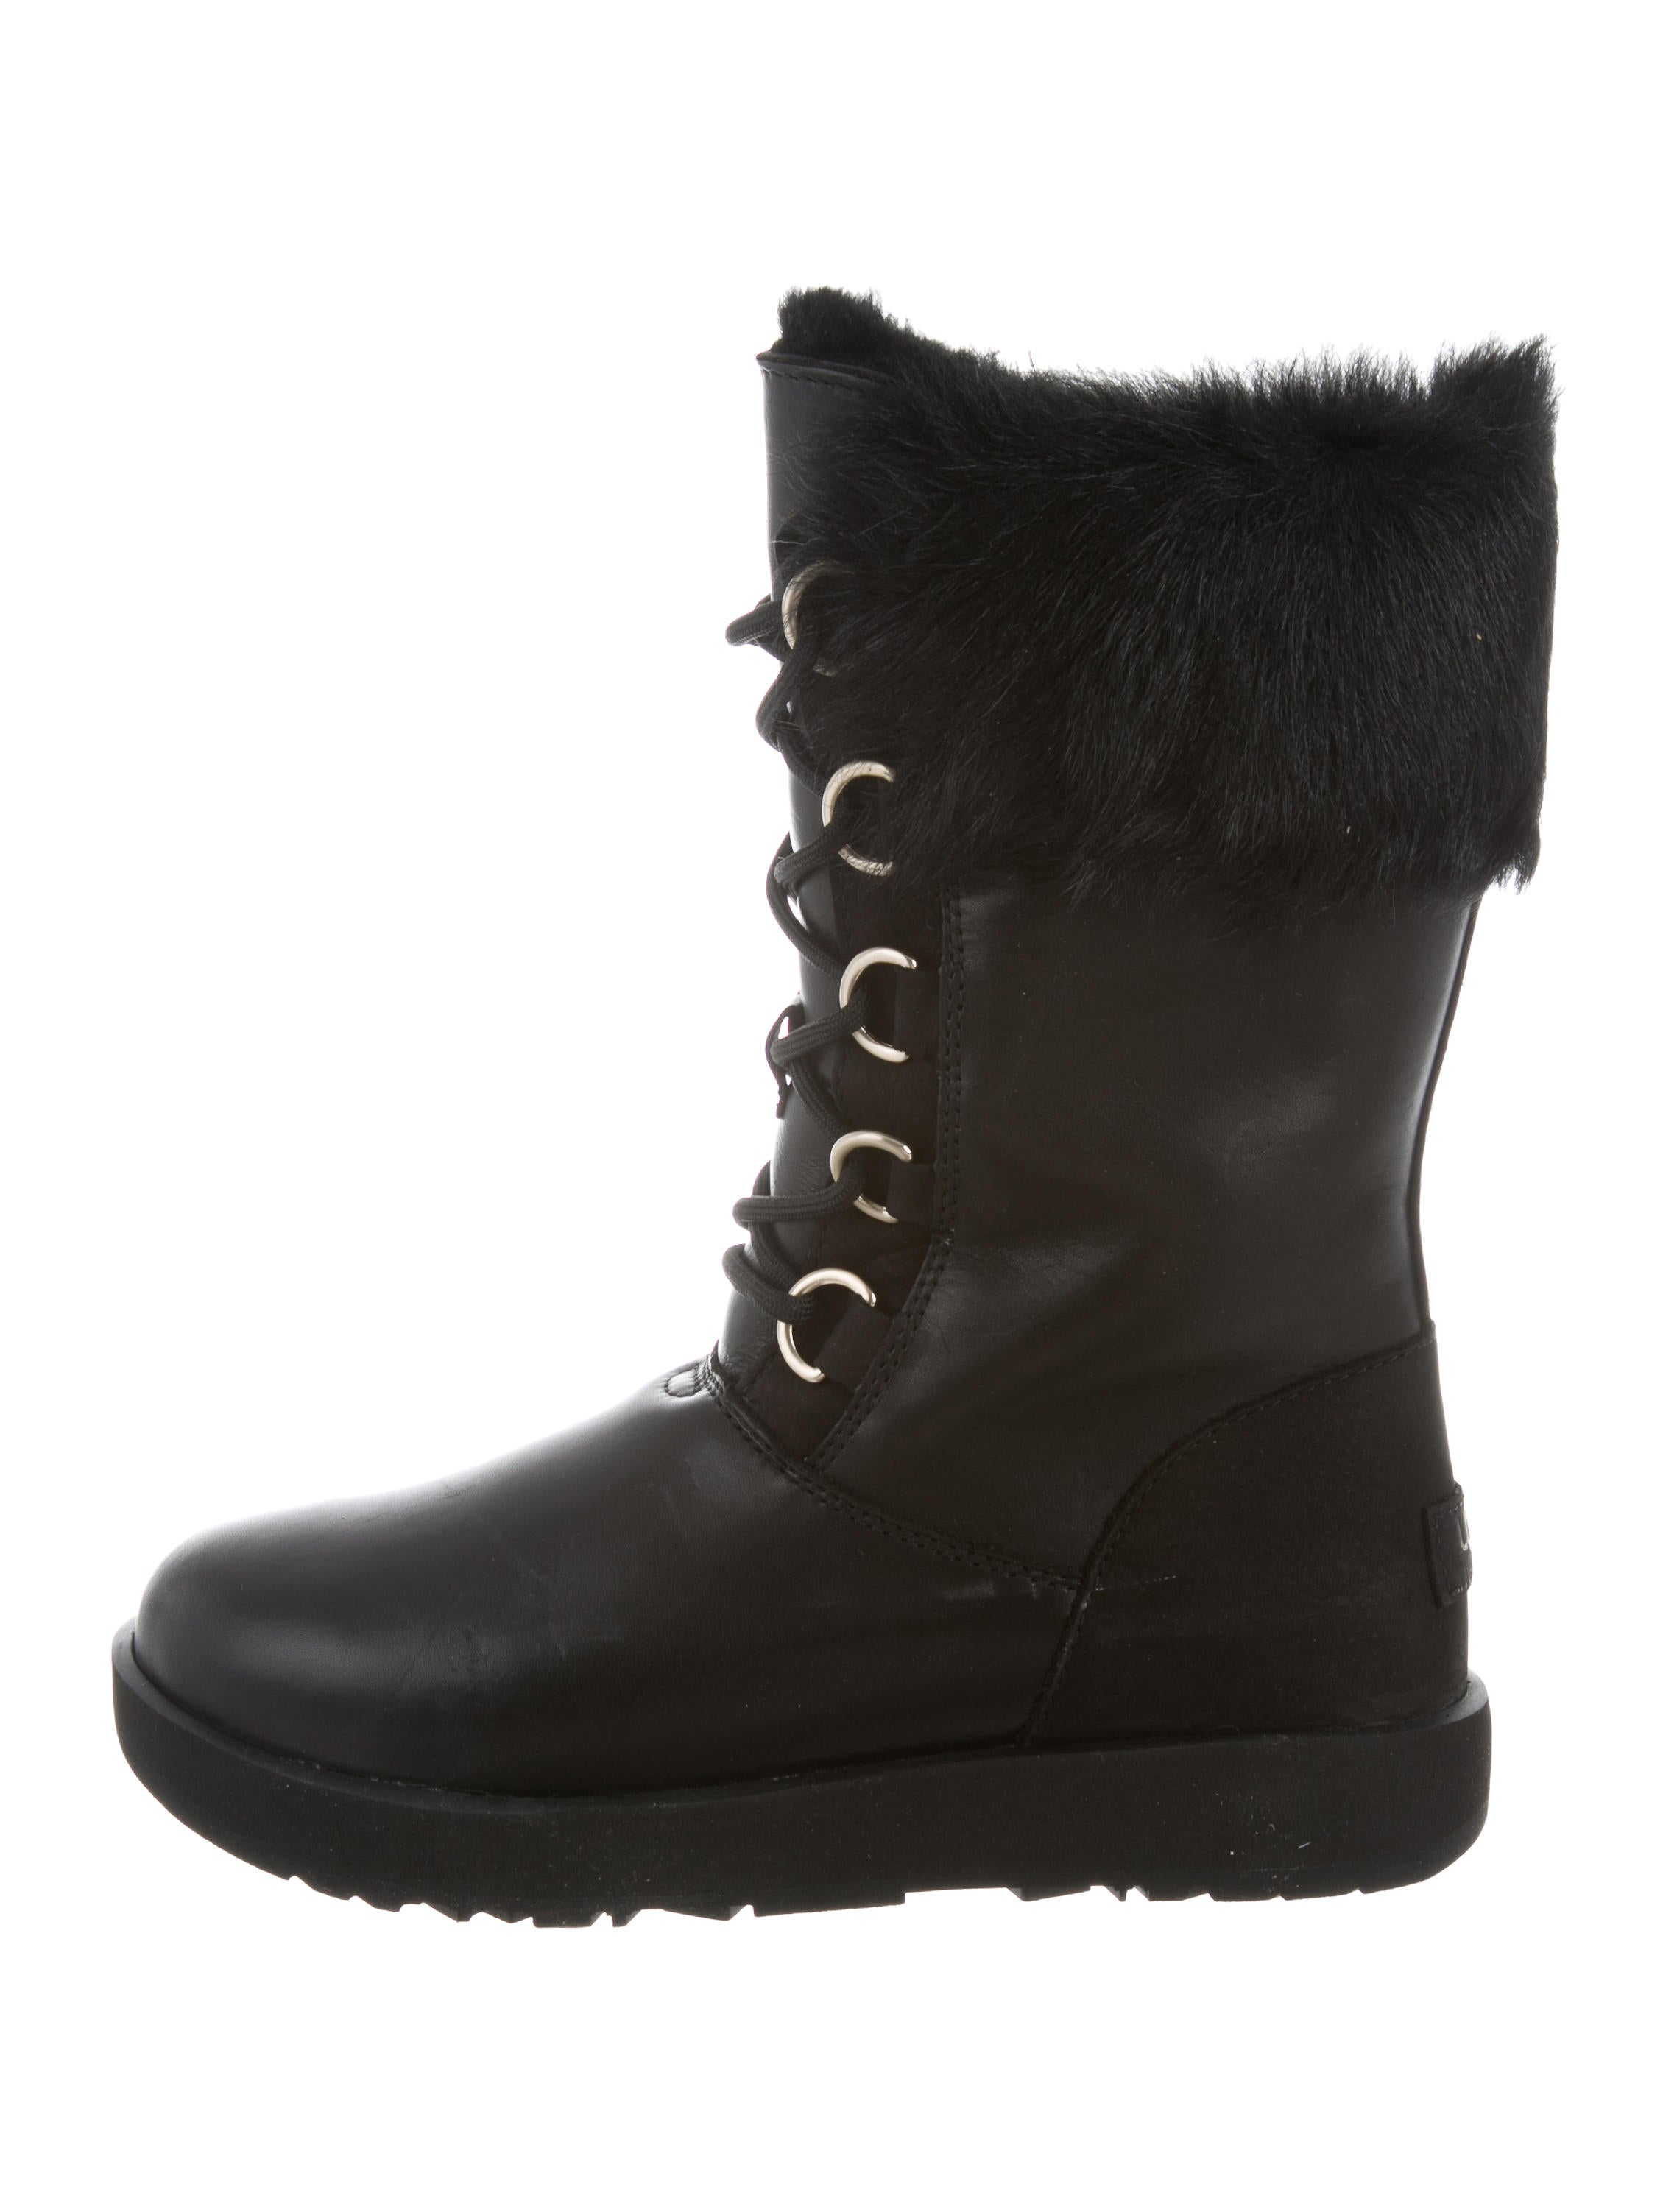 from china low shipping fee sast cheap price UGG Australia Aya Lace-Up Boots vGDi3UUjw